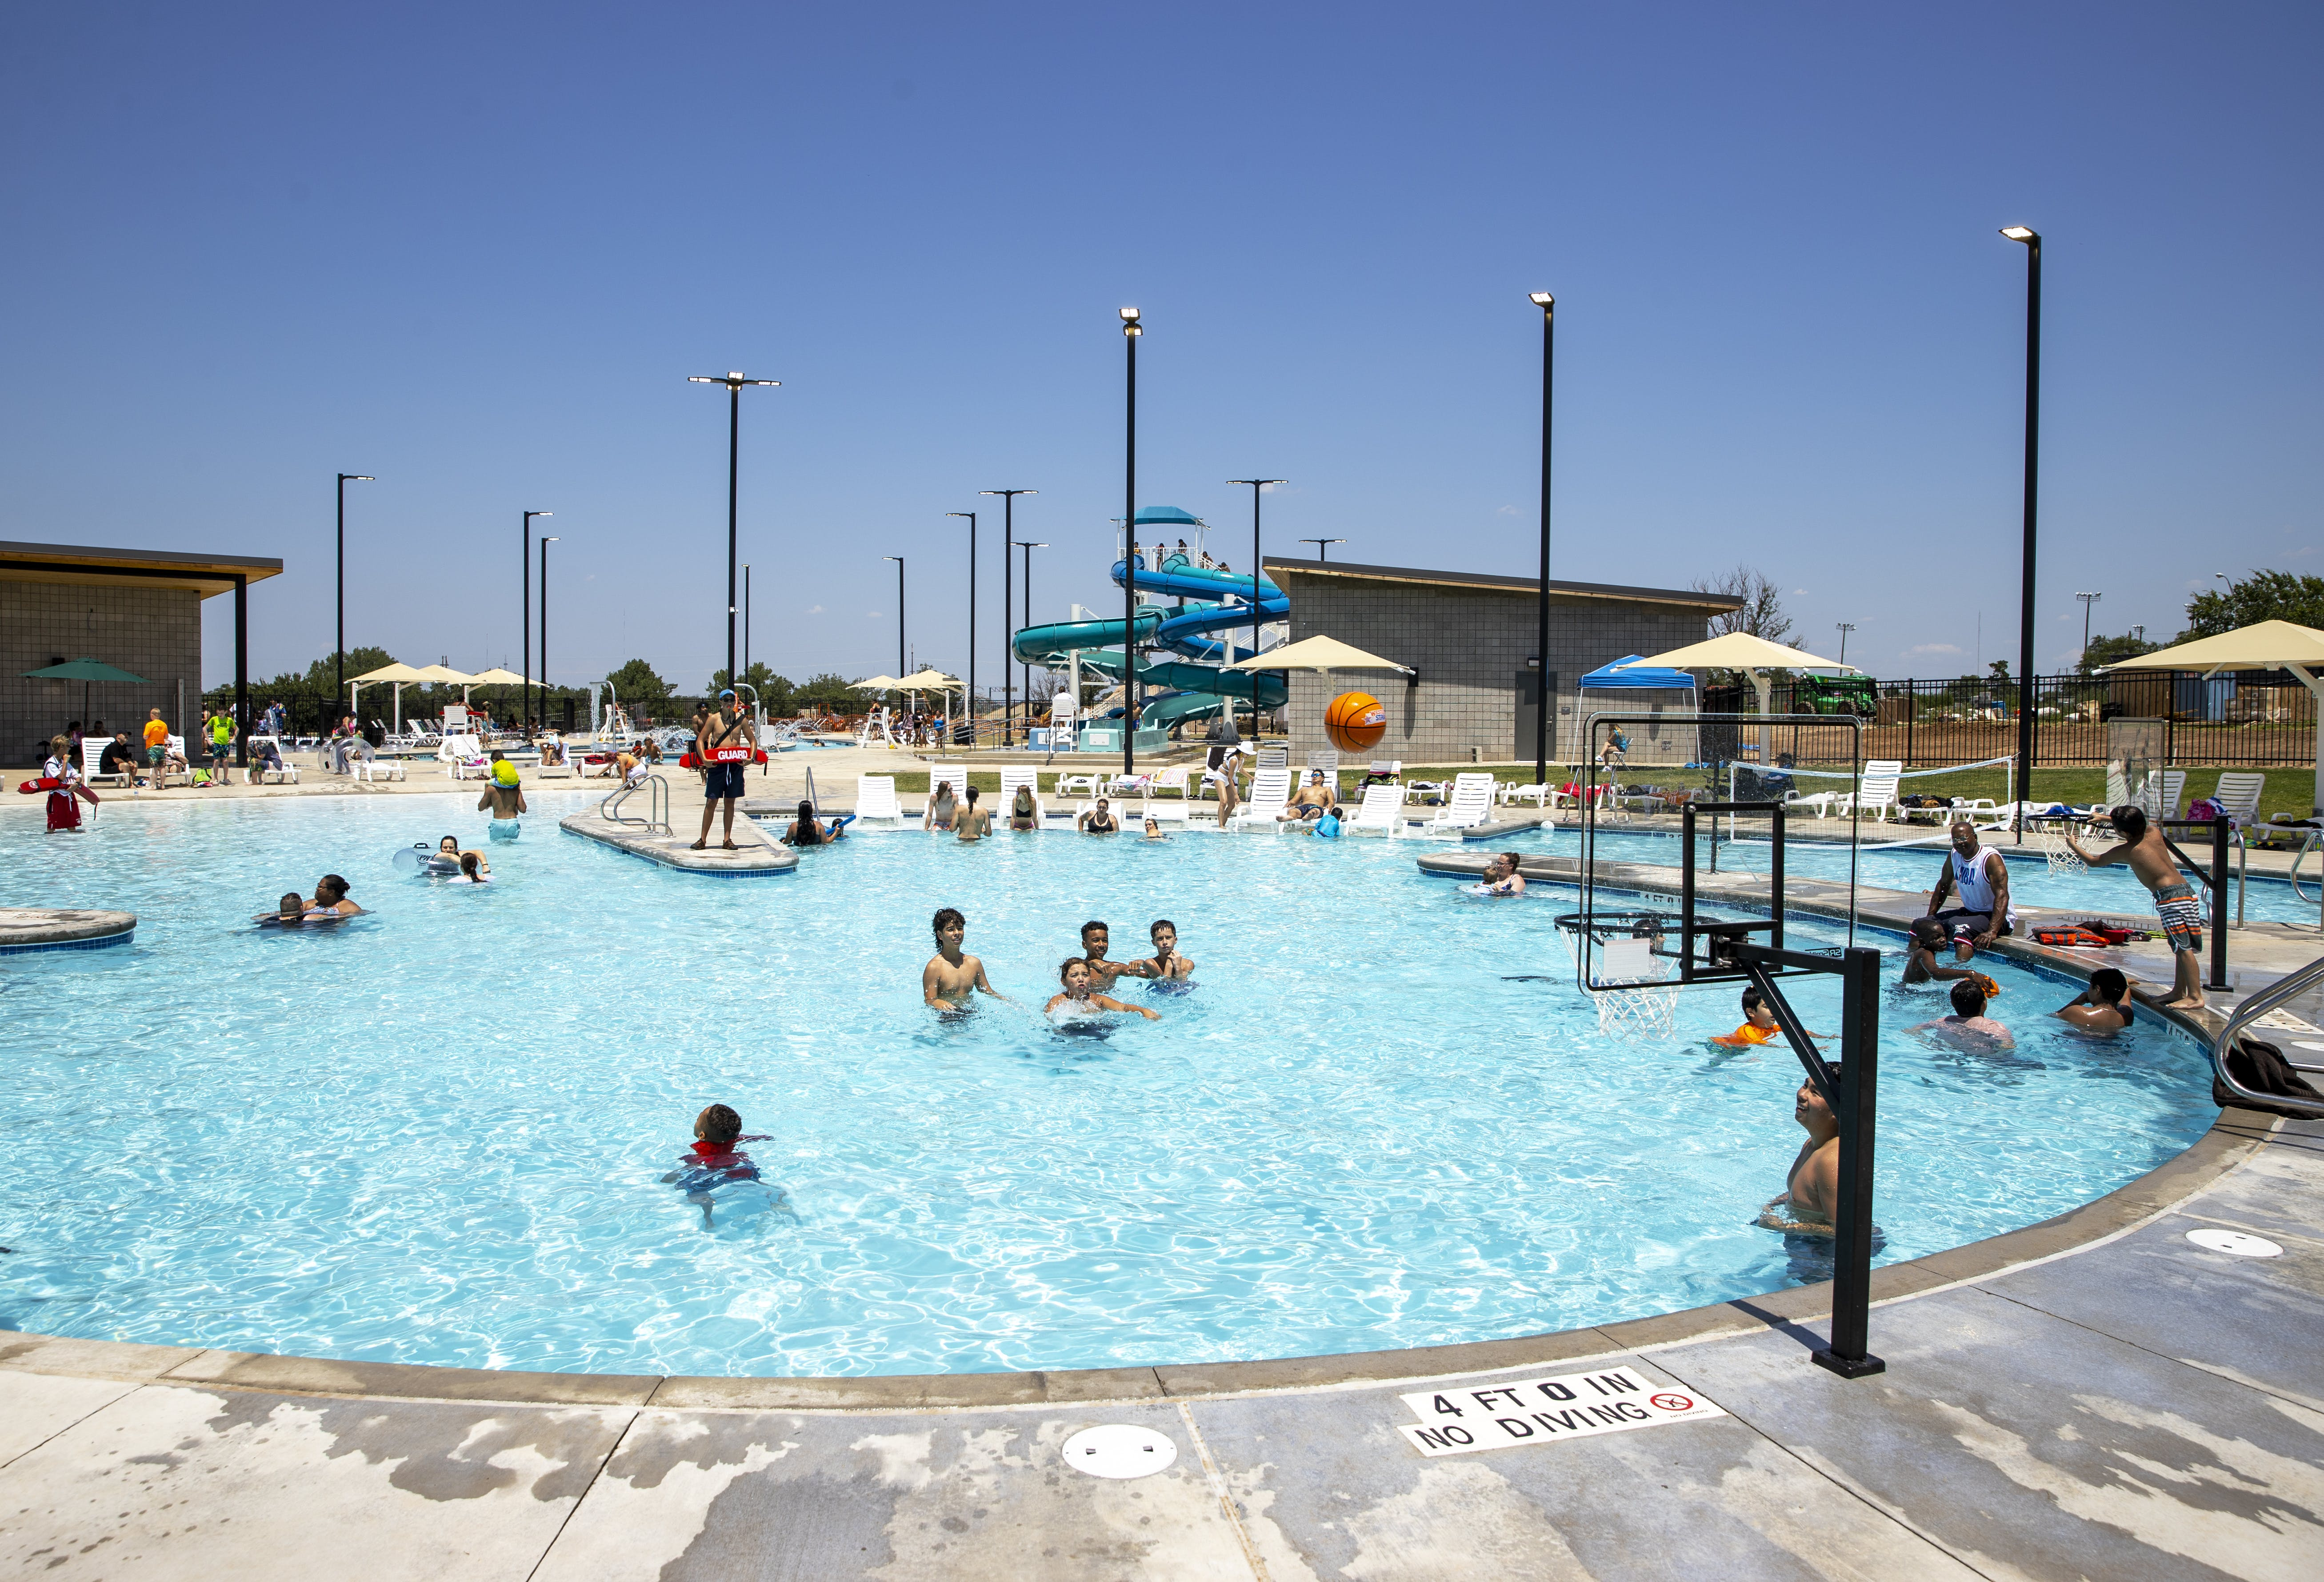 KAMR/KCIT - City of Amarillo celebrates Thompson Park Pool officially re-opening with ribbon cutting ceremony cover image